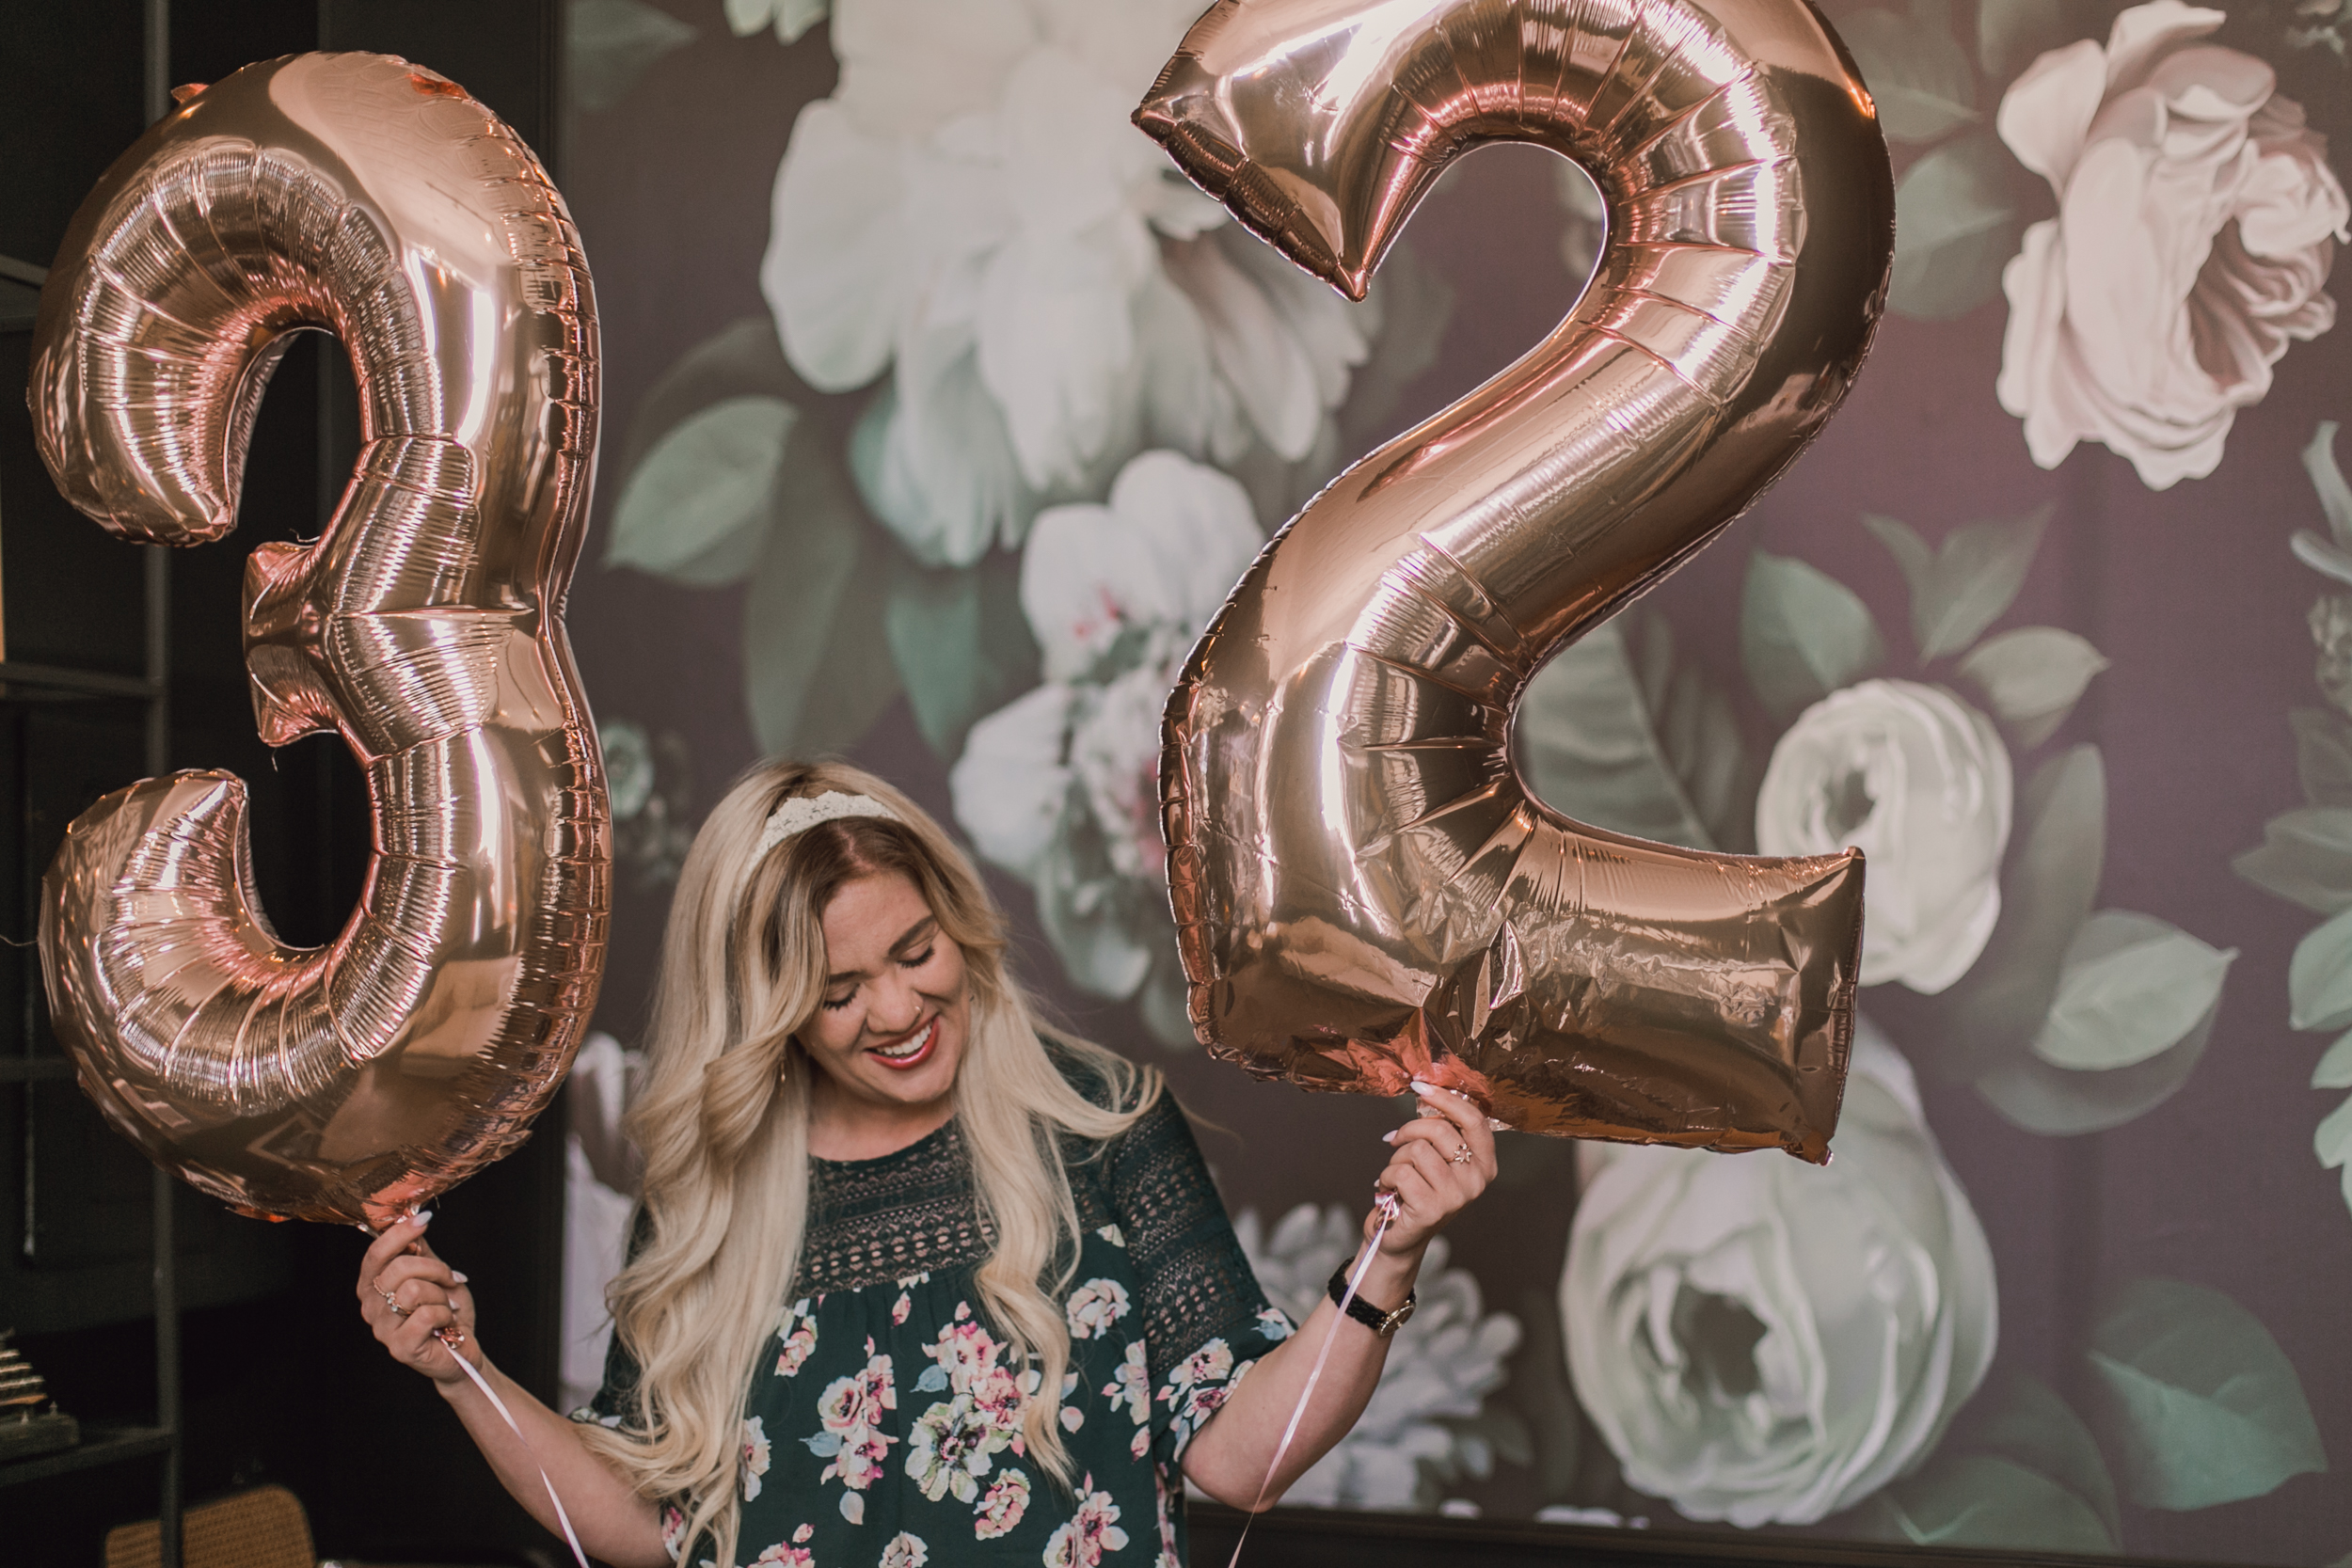 32 things i would tell my younger self, birthday shoot with number ballons, number balloons, rose gold number ballons-www.rachelsmak.com4.jpg